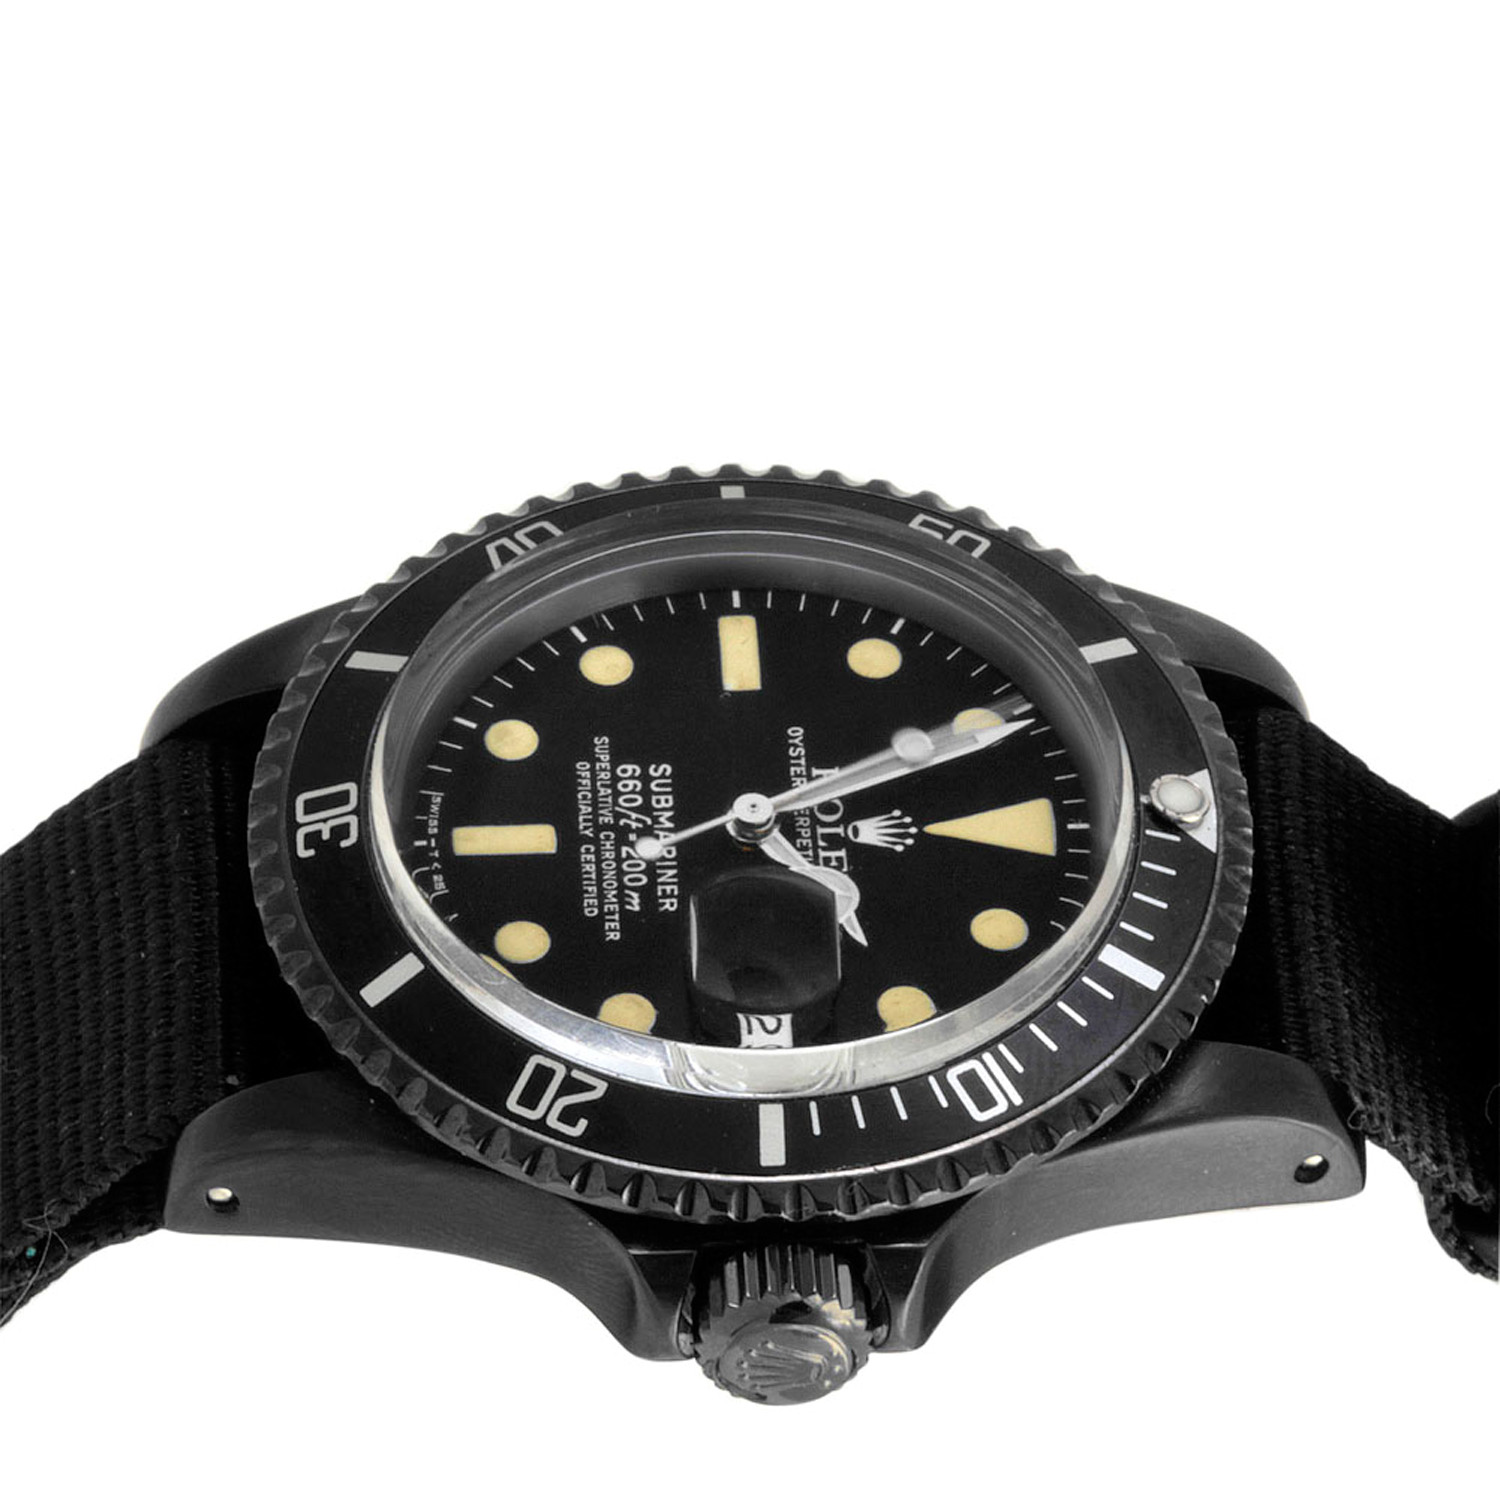 W Dlc Coating Rolex Submarine...